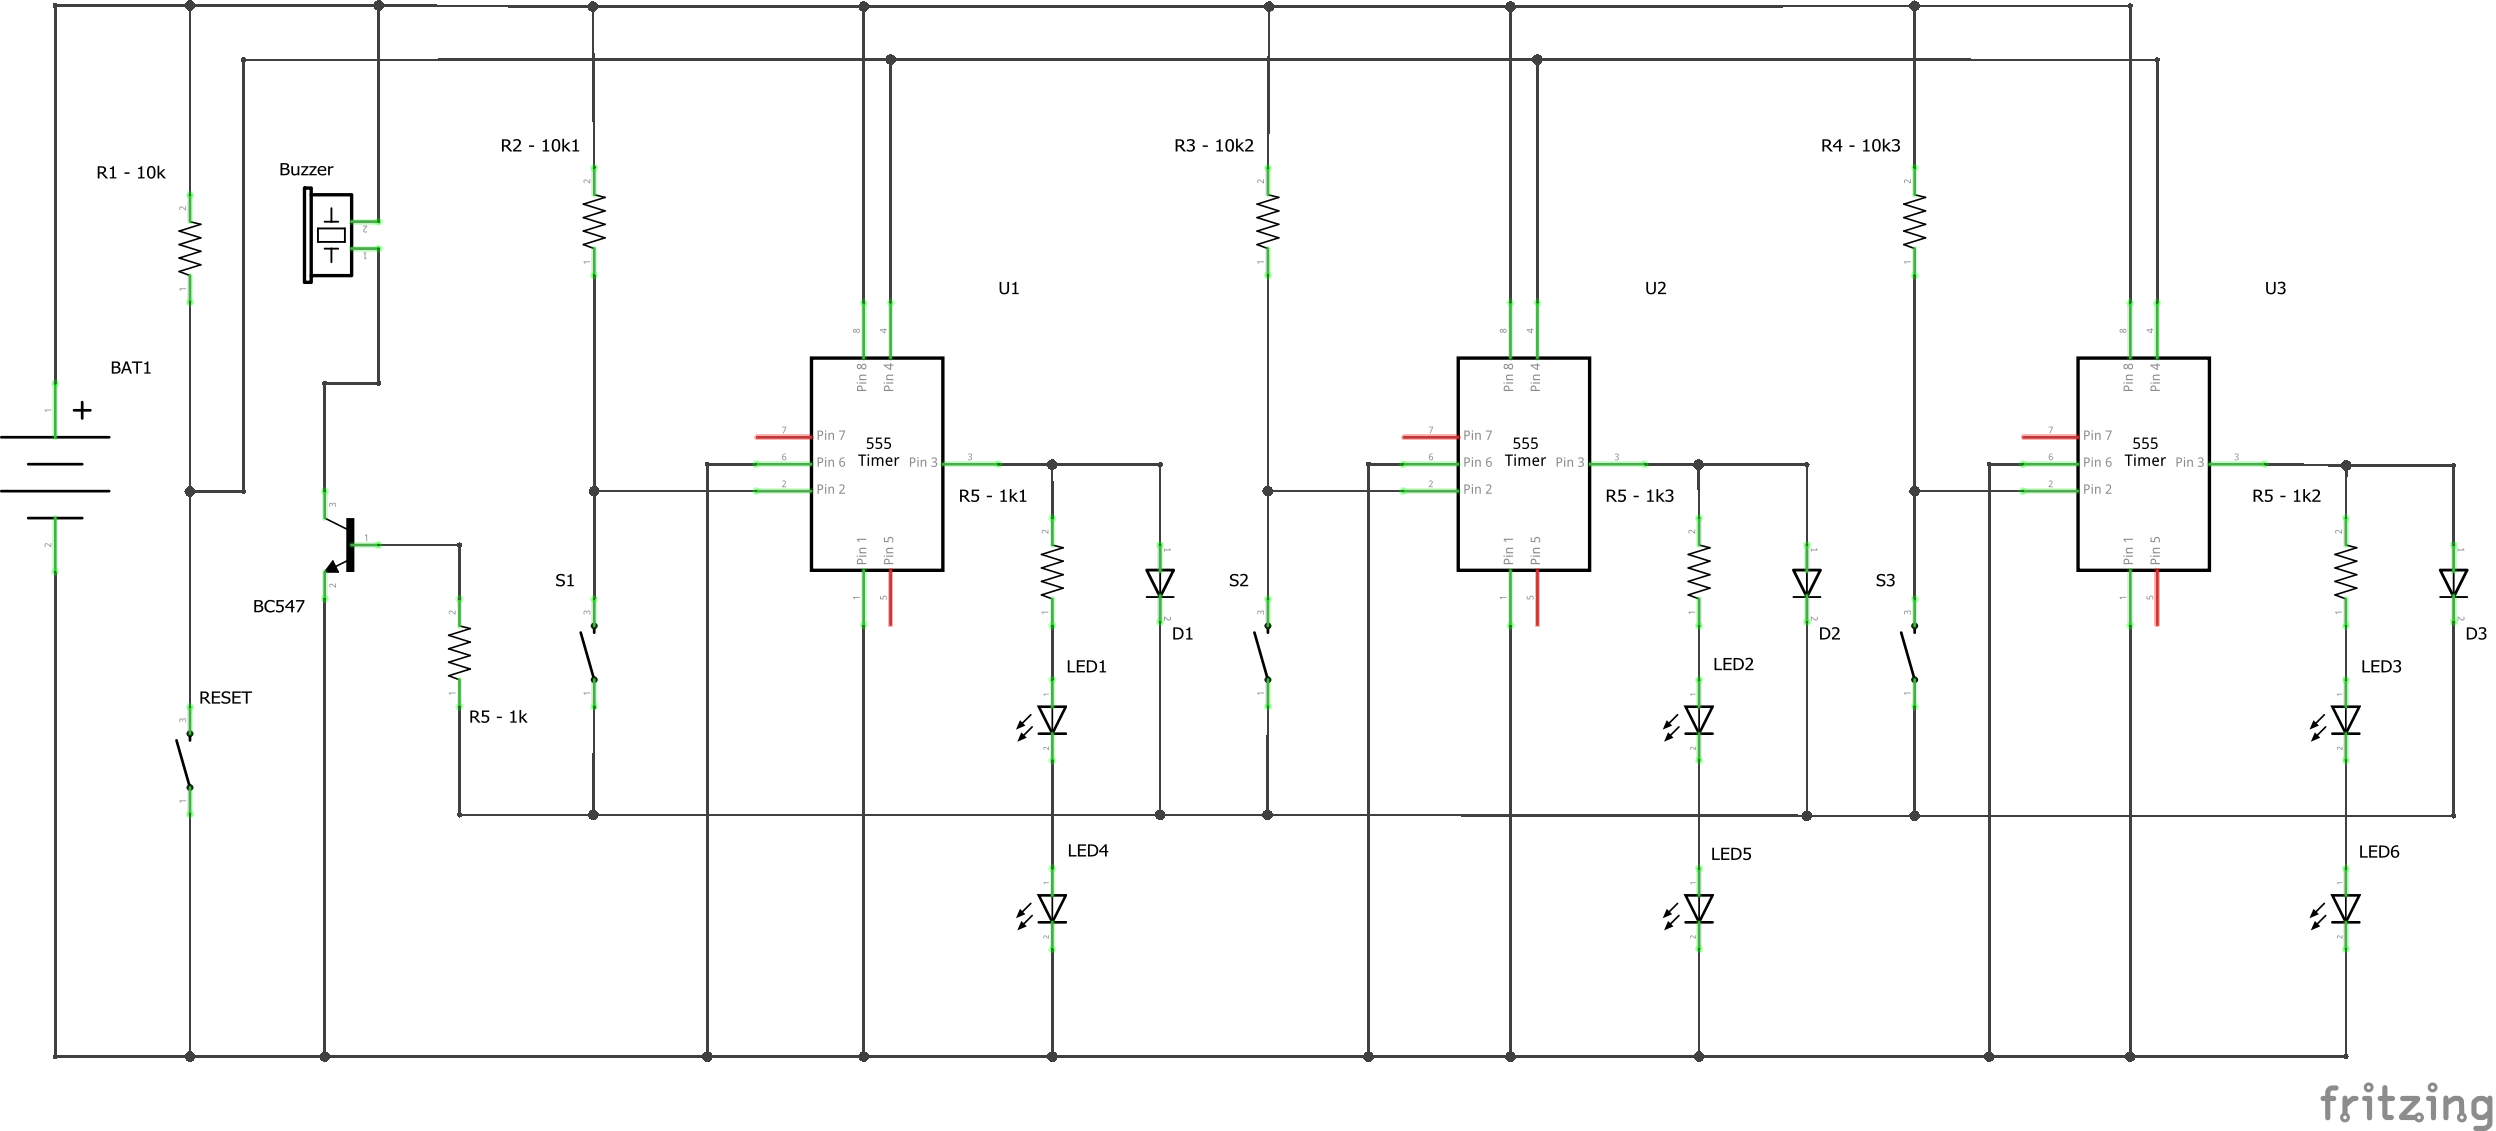 Quiz Buzzer Using 555 Timer Ic Monostable Multivibrator Circuits Electronics Nanman Schem Y6gxlzop2g